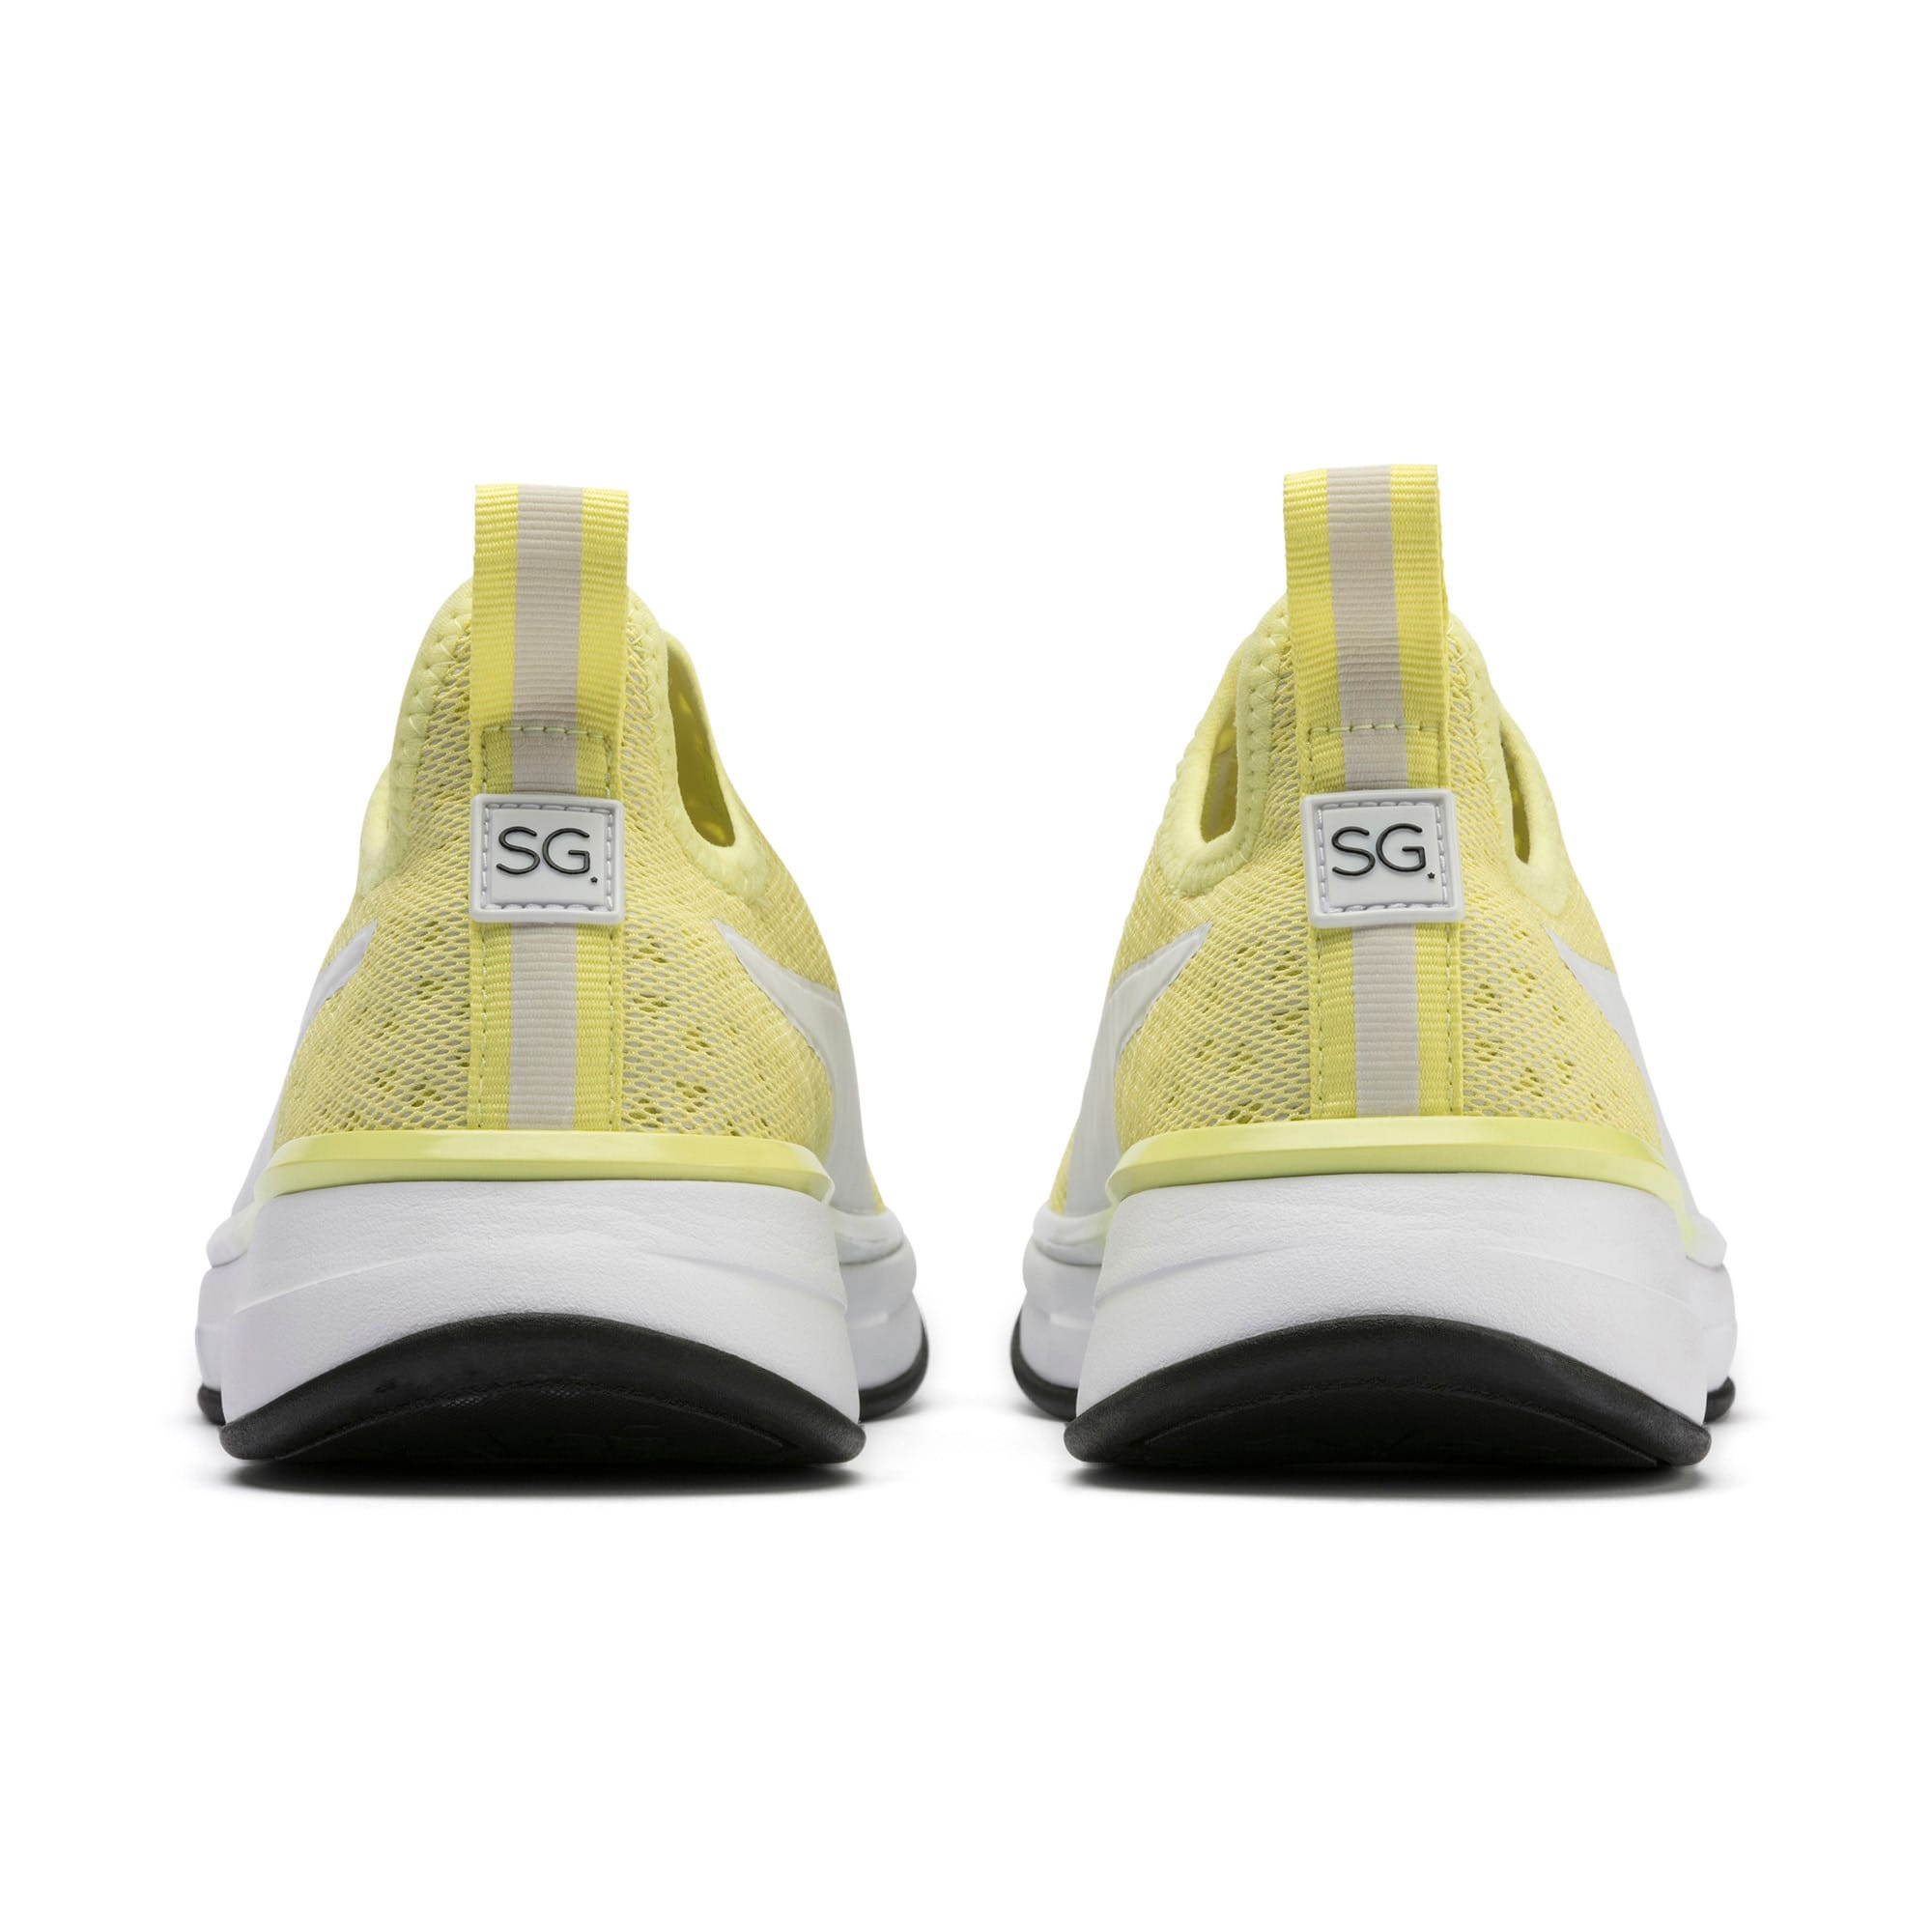 Thumbnail 4 of SG Slip-on Bright Women's Training Shoes, YELLOW-Puma White-Puma Black, medium